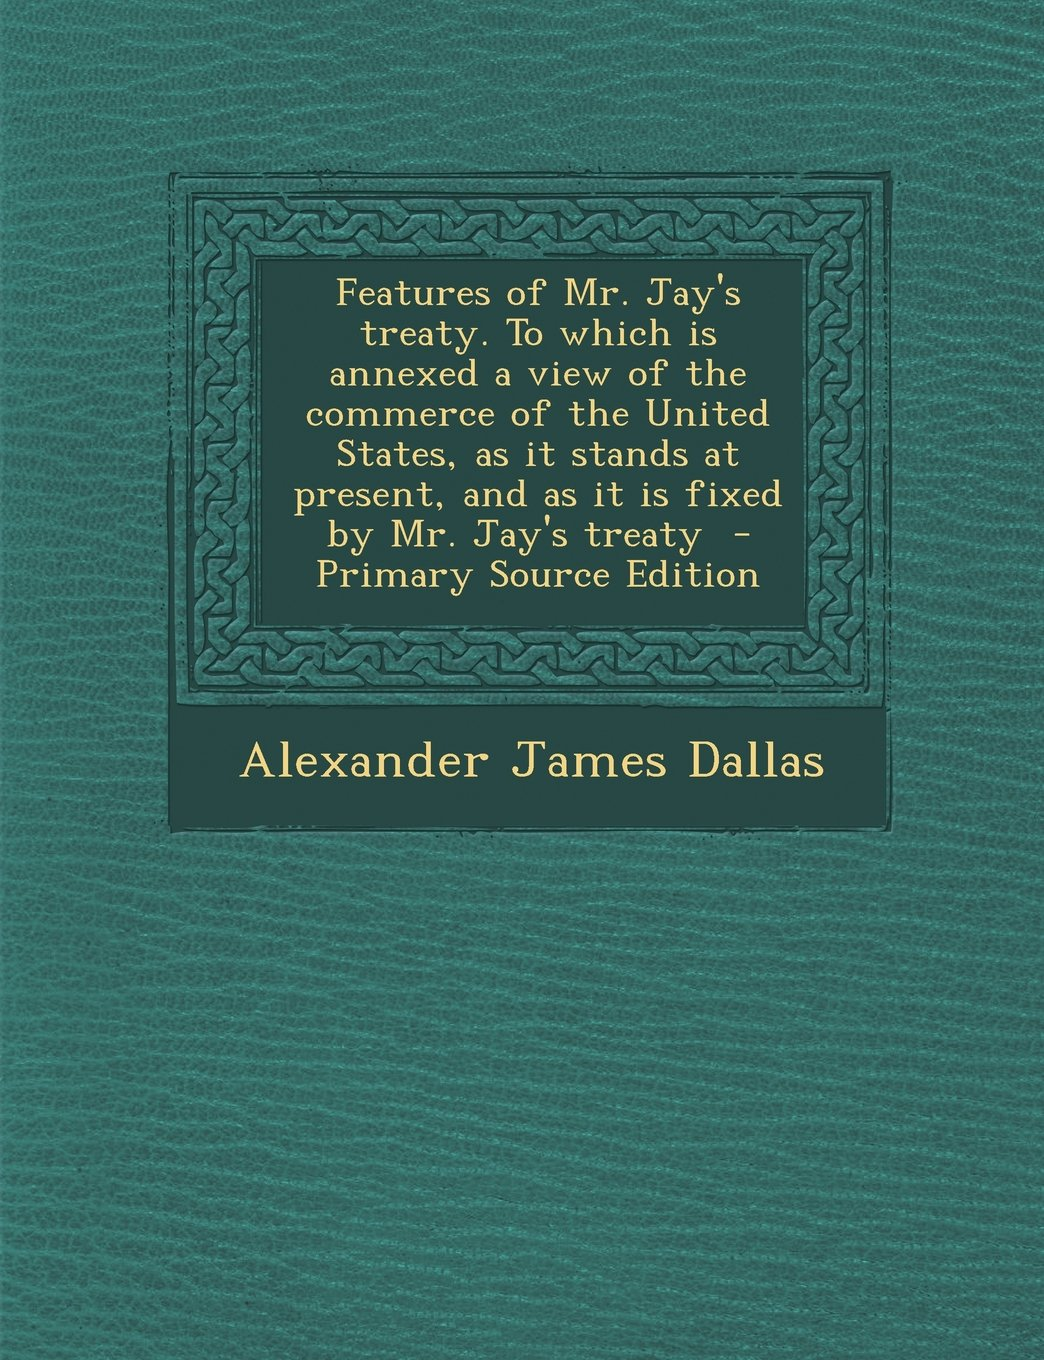 Download Features of Mr. Jay's treaty. To which is annexed a view of the commerce of the United States, as it stands at present, and as it is fixed by Mr. Jay's treaty pdf